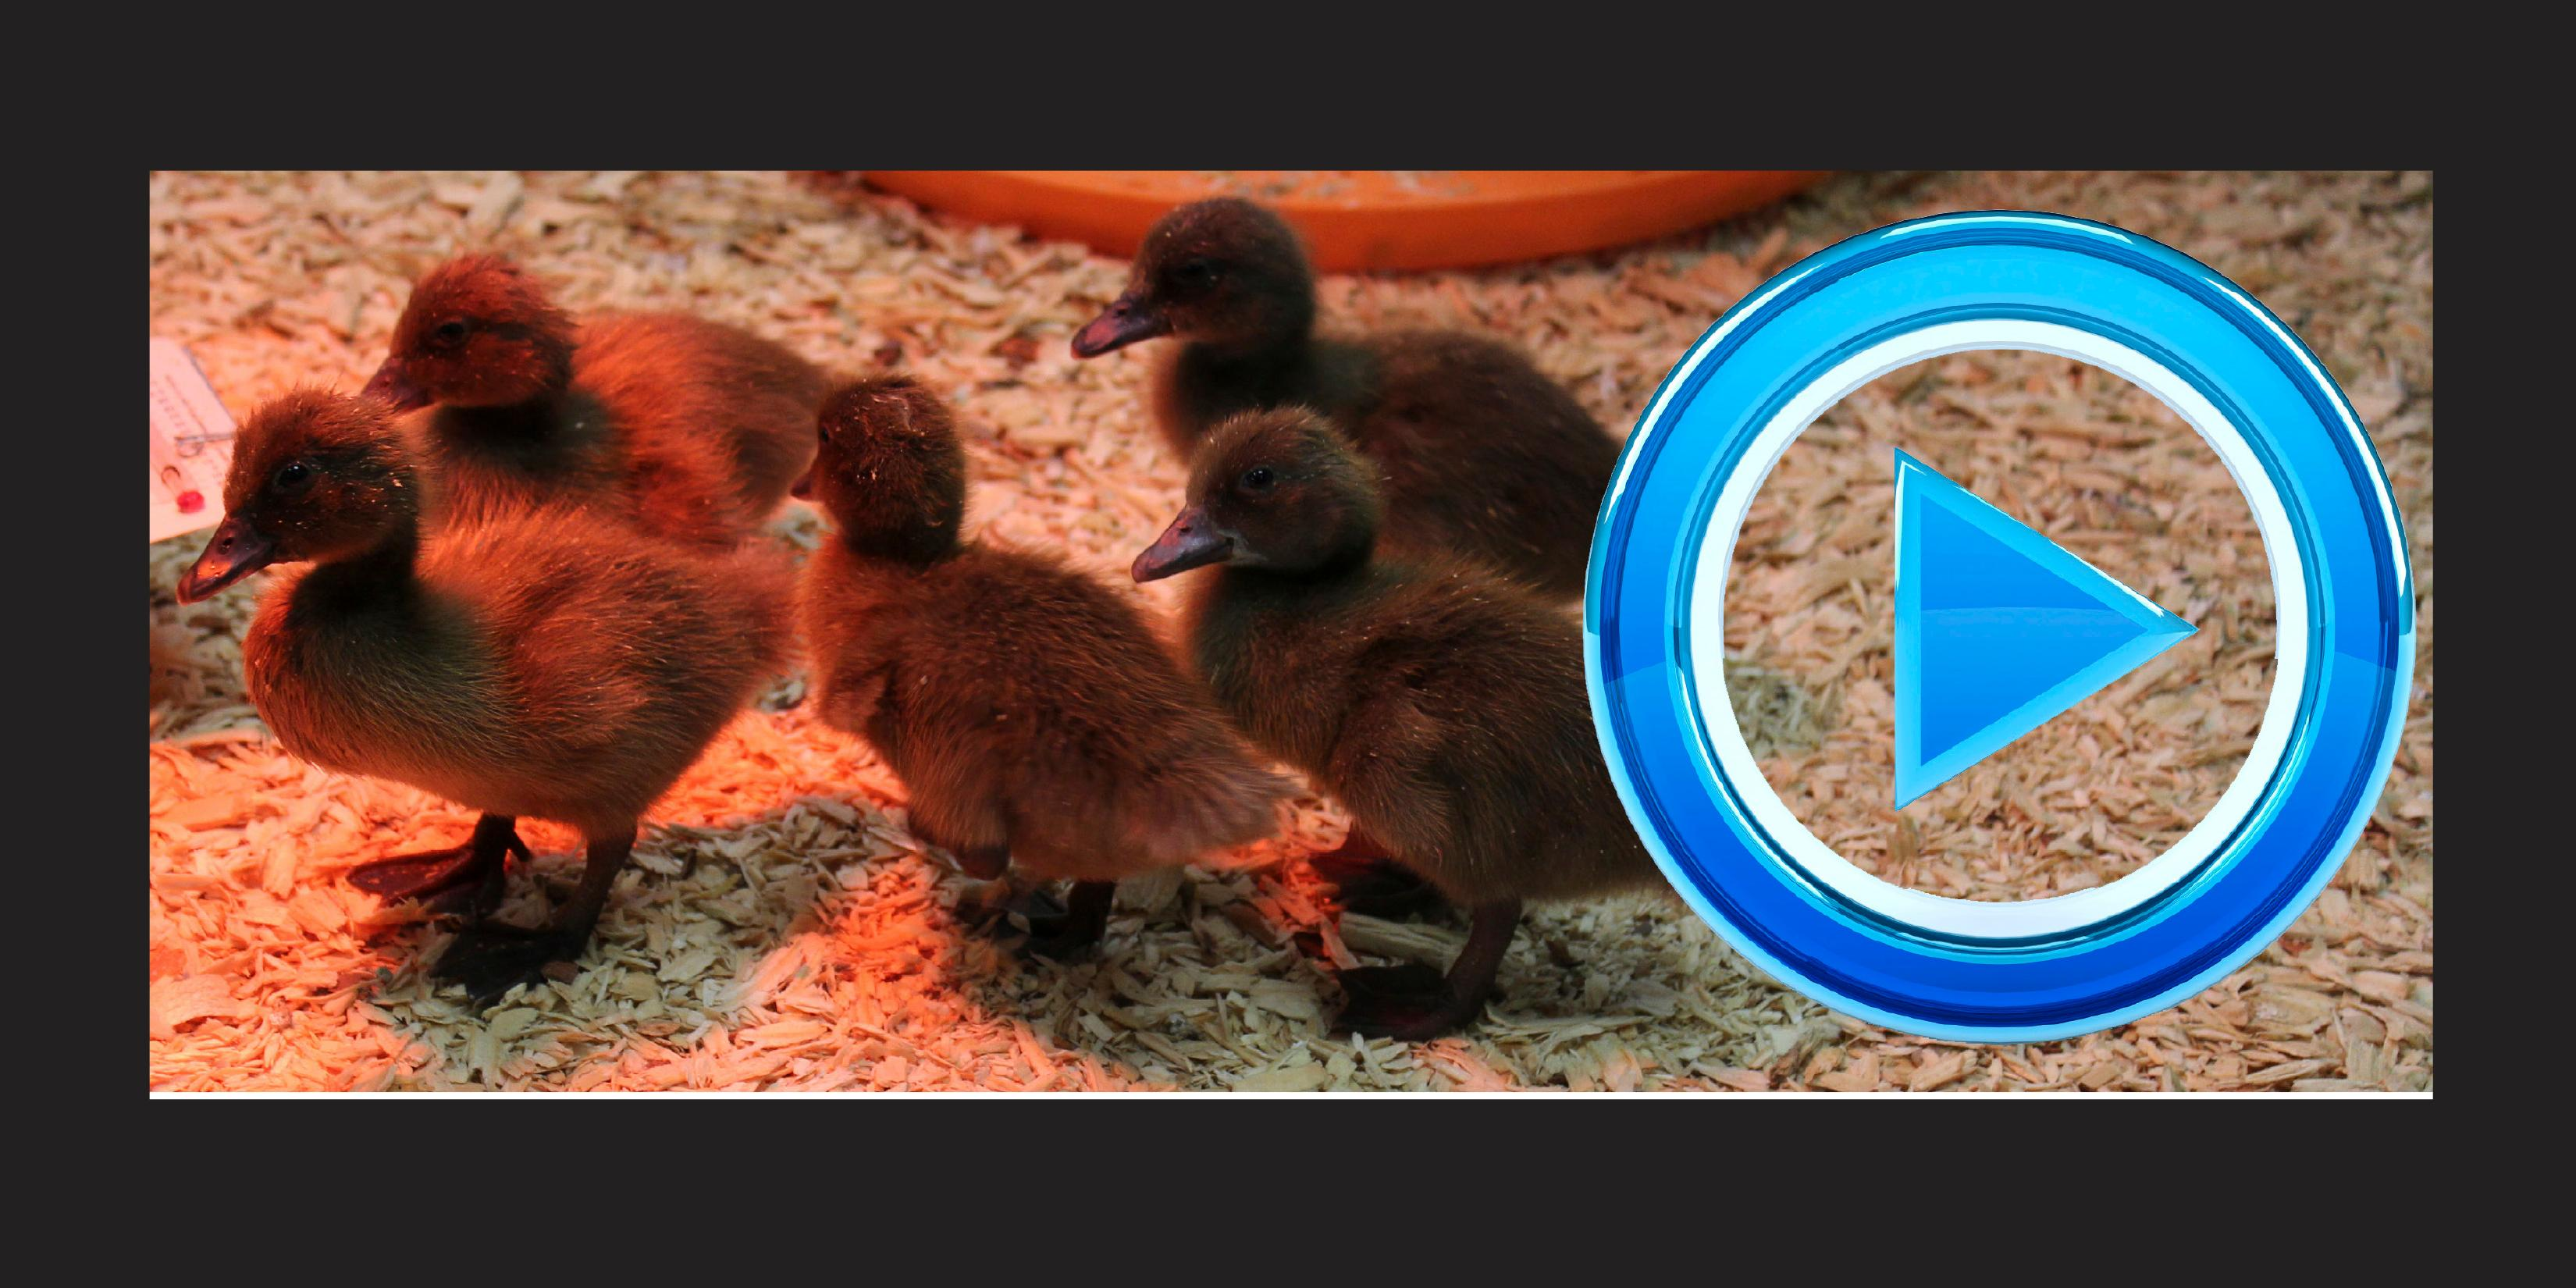 Addison Trail students hatch, raise ducklings to learn about animal behavior and sustainability